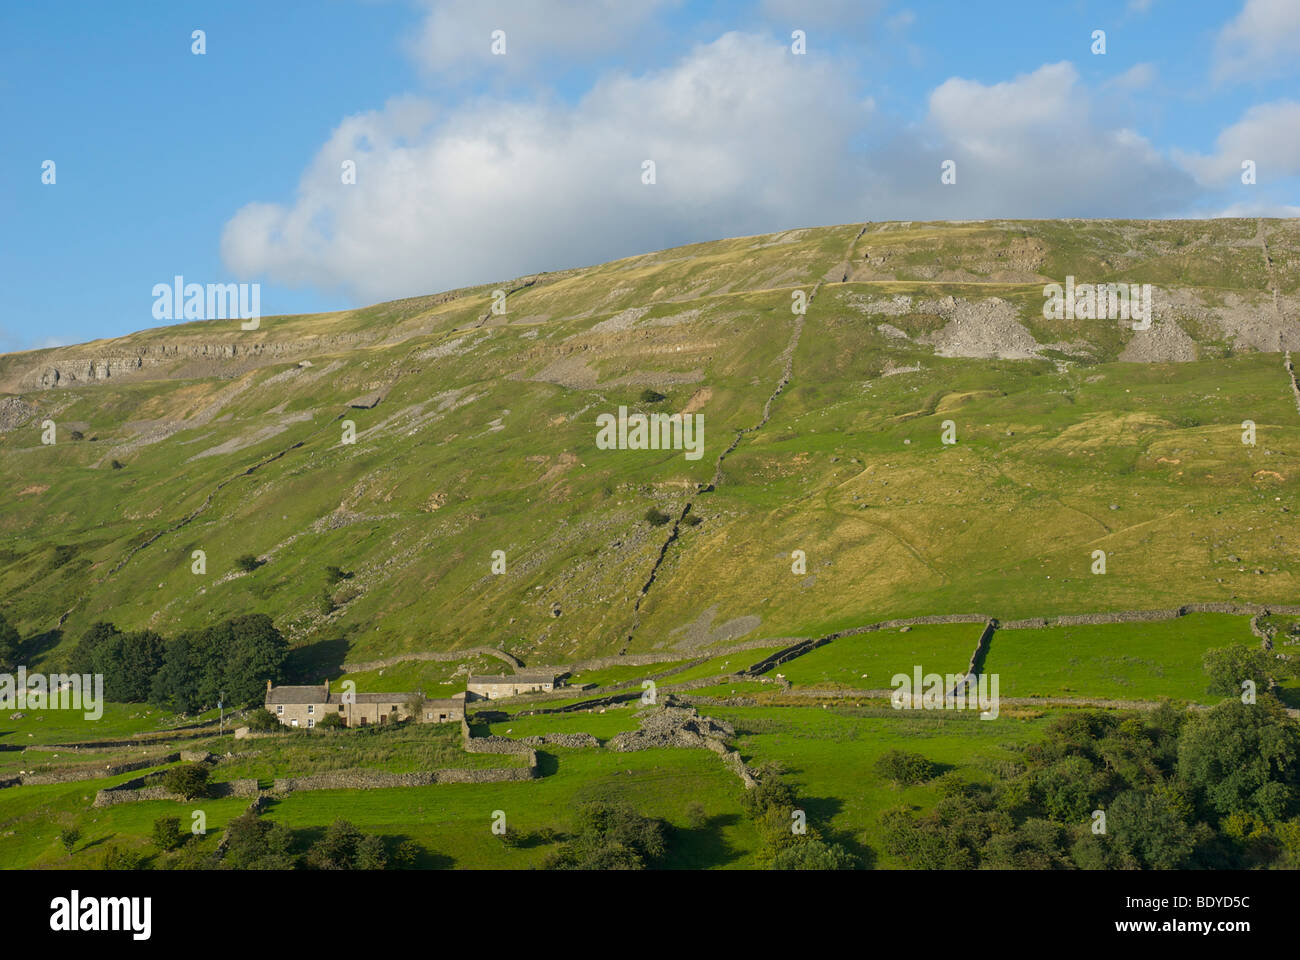 Cottages in Arkengarthdale, Yorkshire Dales National Park, North Yorkshire, England UK - Stock Image